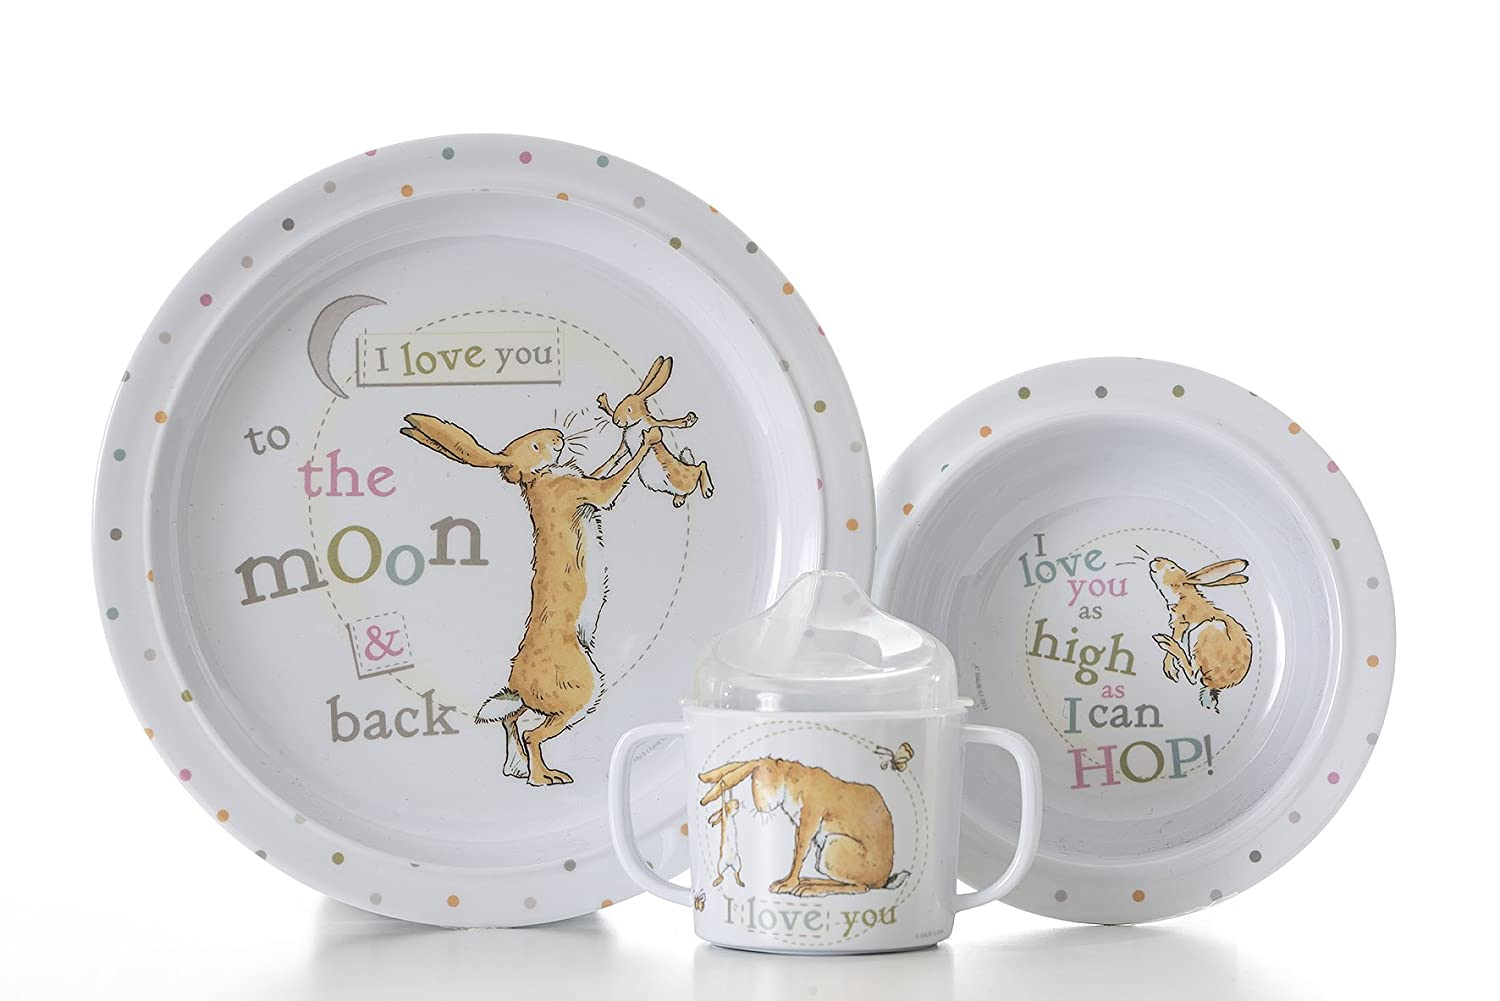 Amazon.com Guess How Much I Love You Baby\u0027s First Breakfast Set - Unisex Baby Gift Set Toys \u0026 Games  sc 1 st  Amazon.com & Amazon.com: Guess How Much I Love You Baby\u0027s First Breakfast Set ...